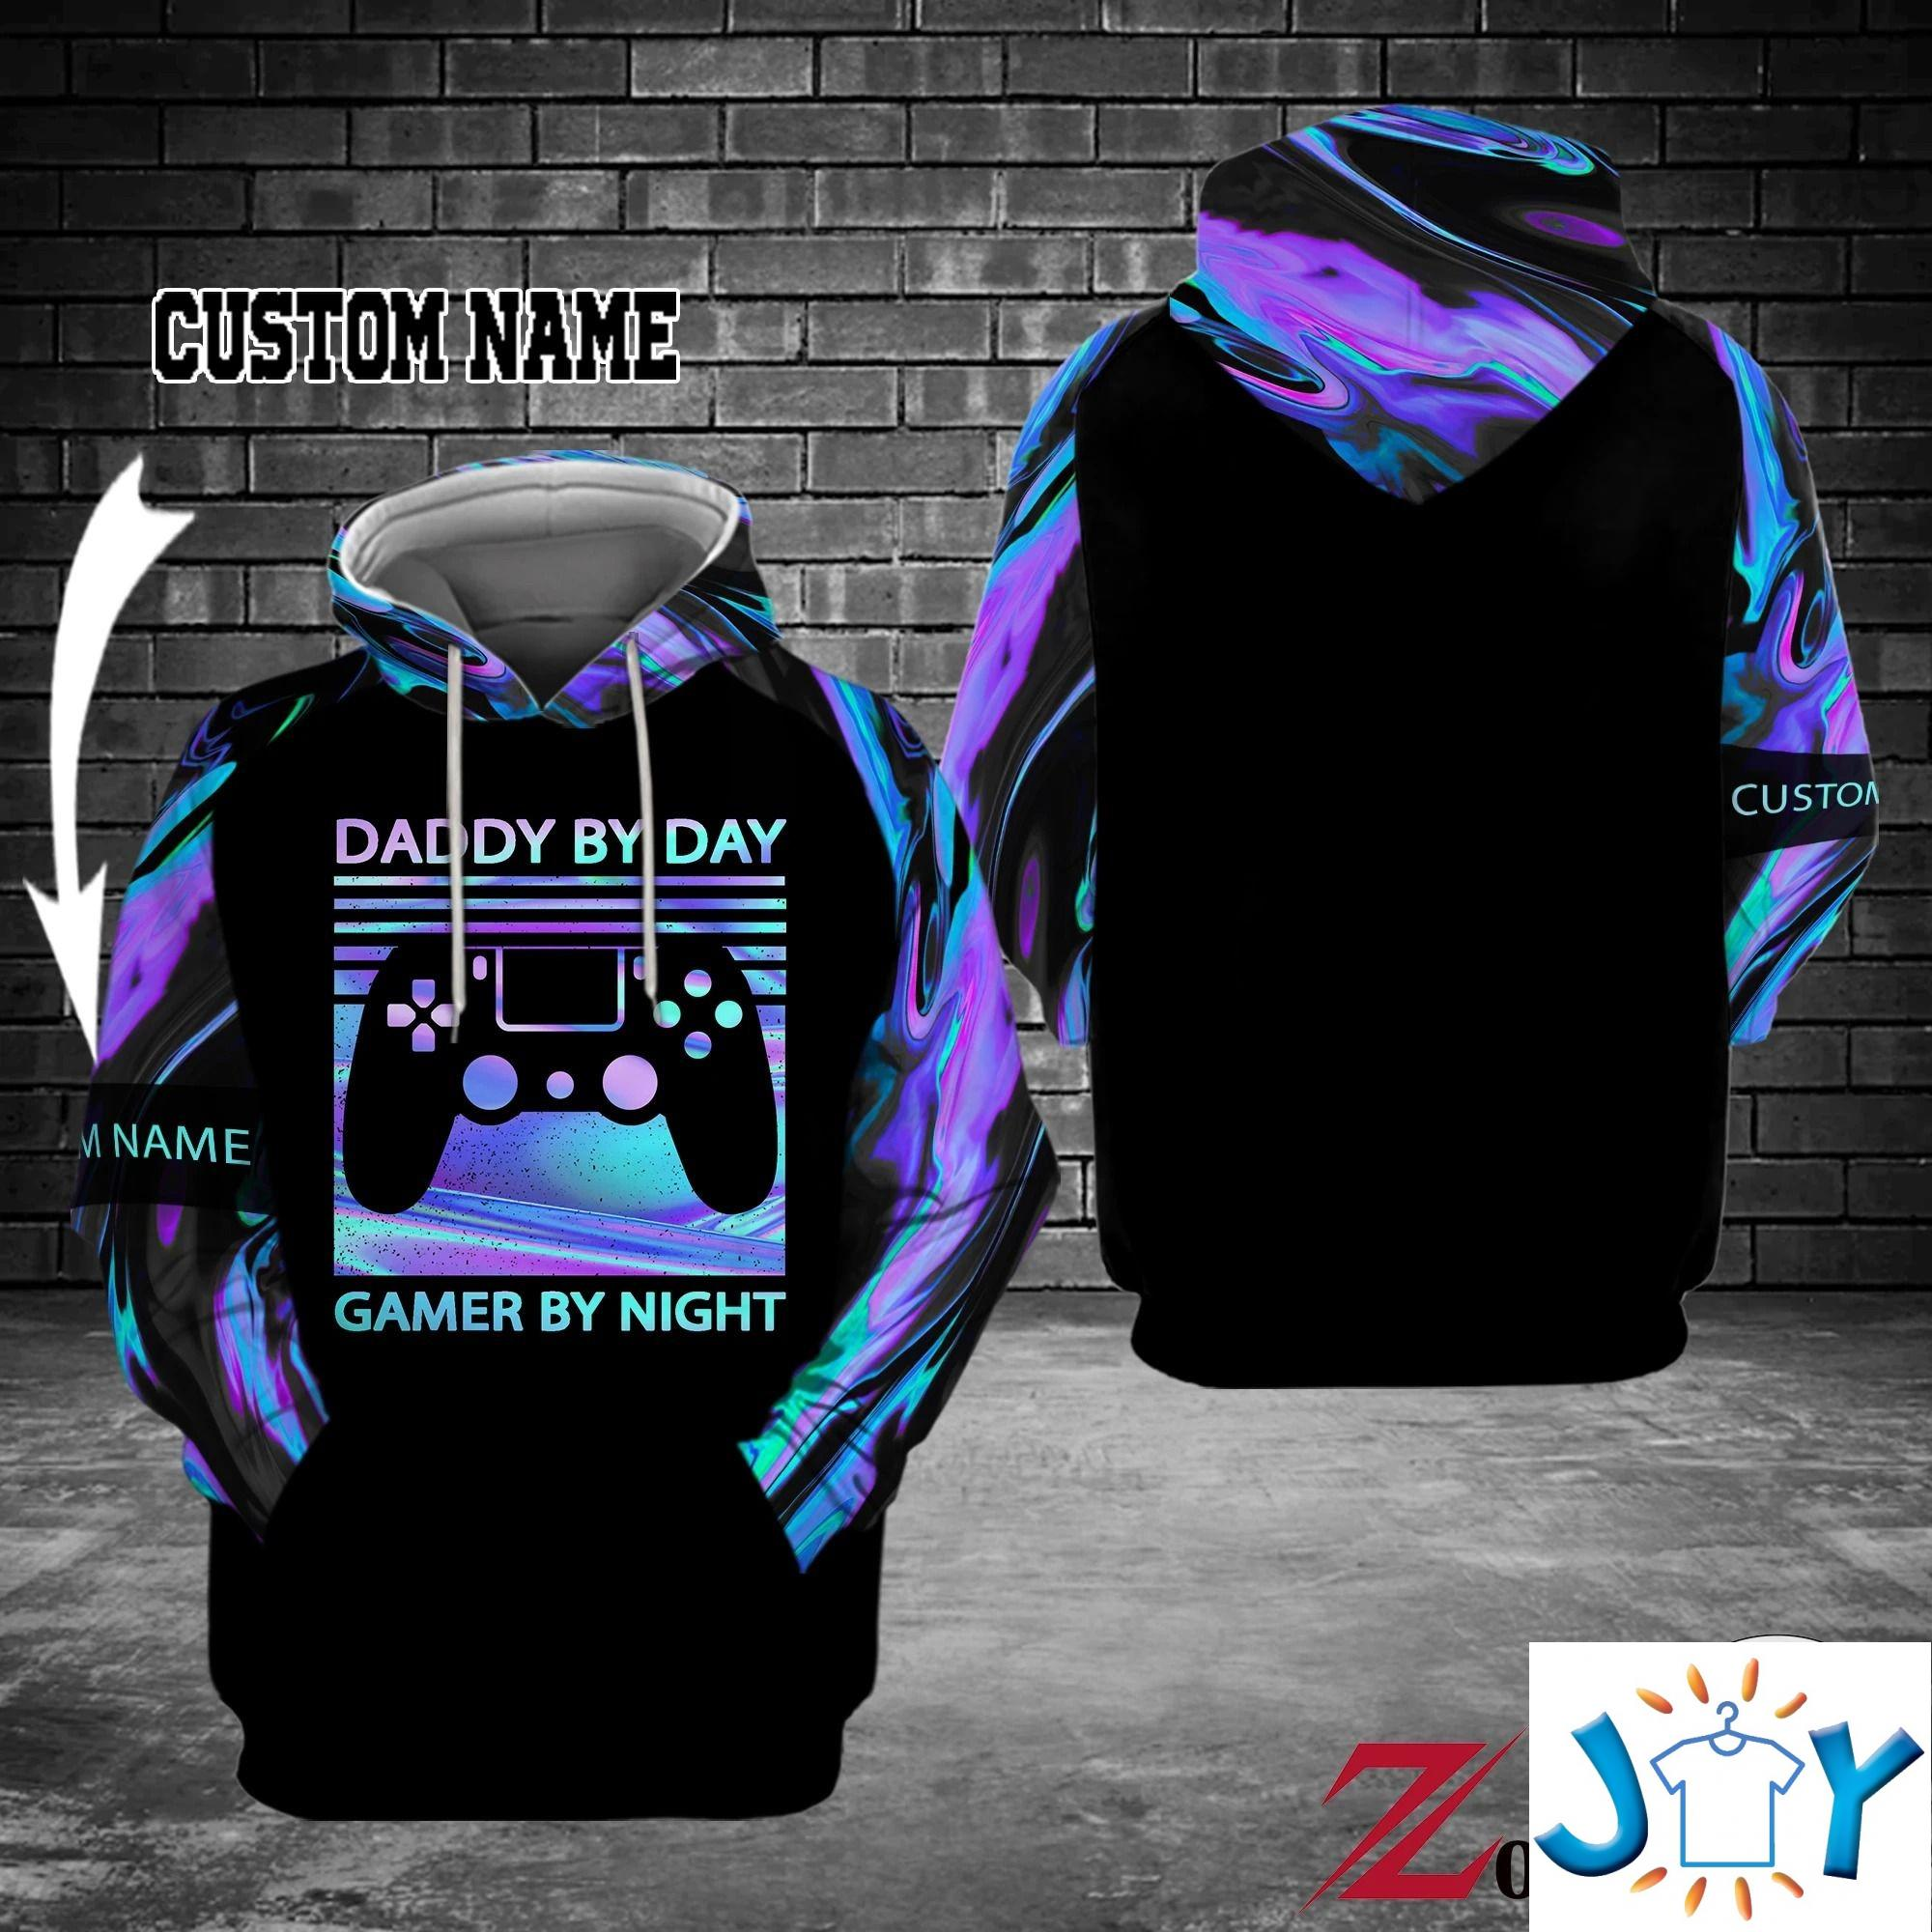 Personalized Daddy By Day Gamer By Night 3D Hoodies